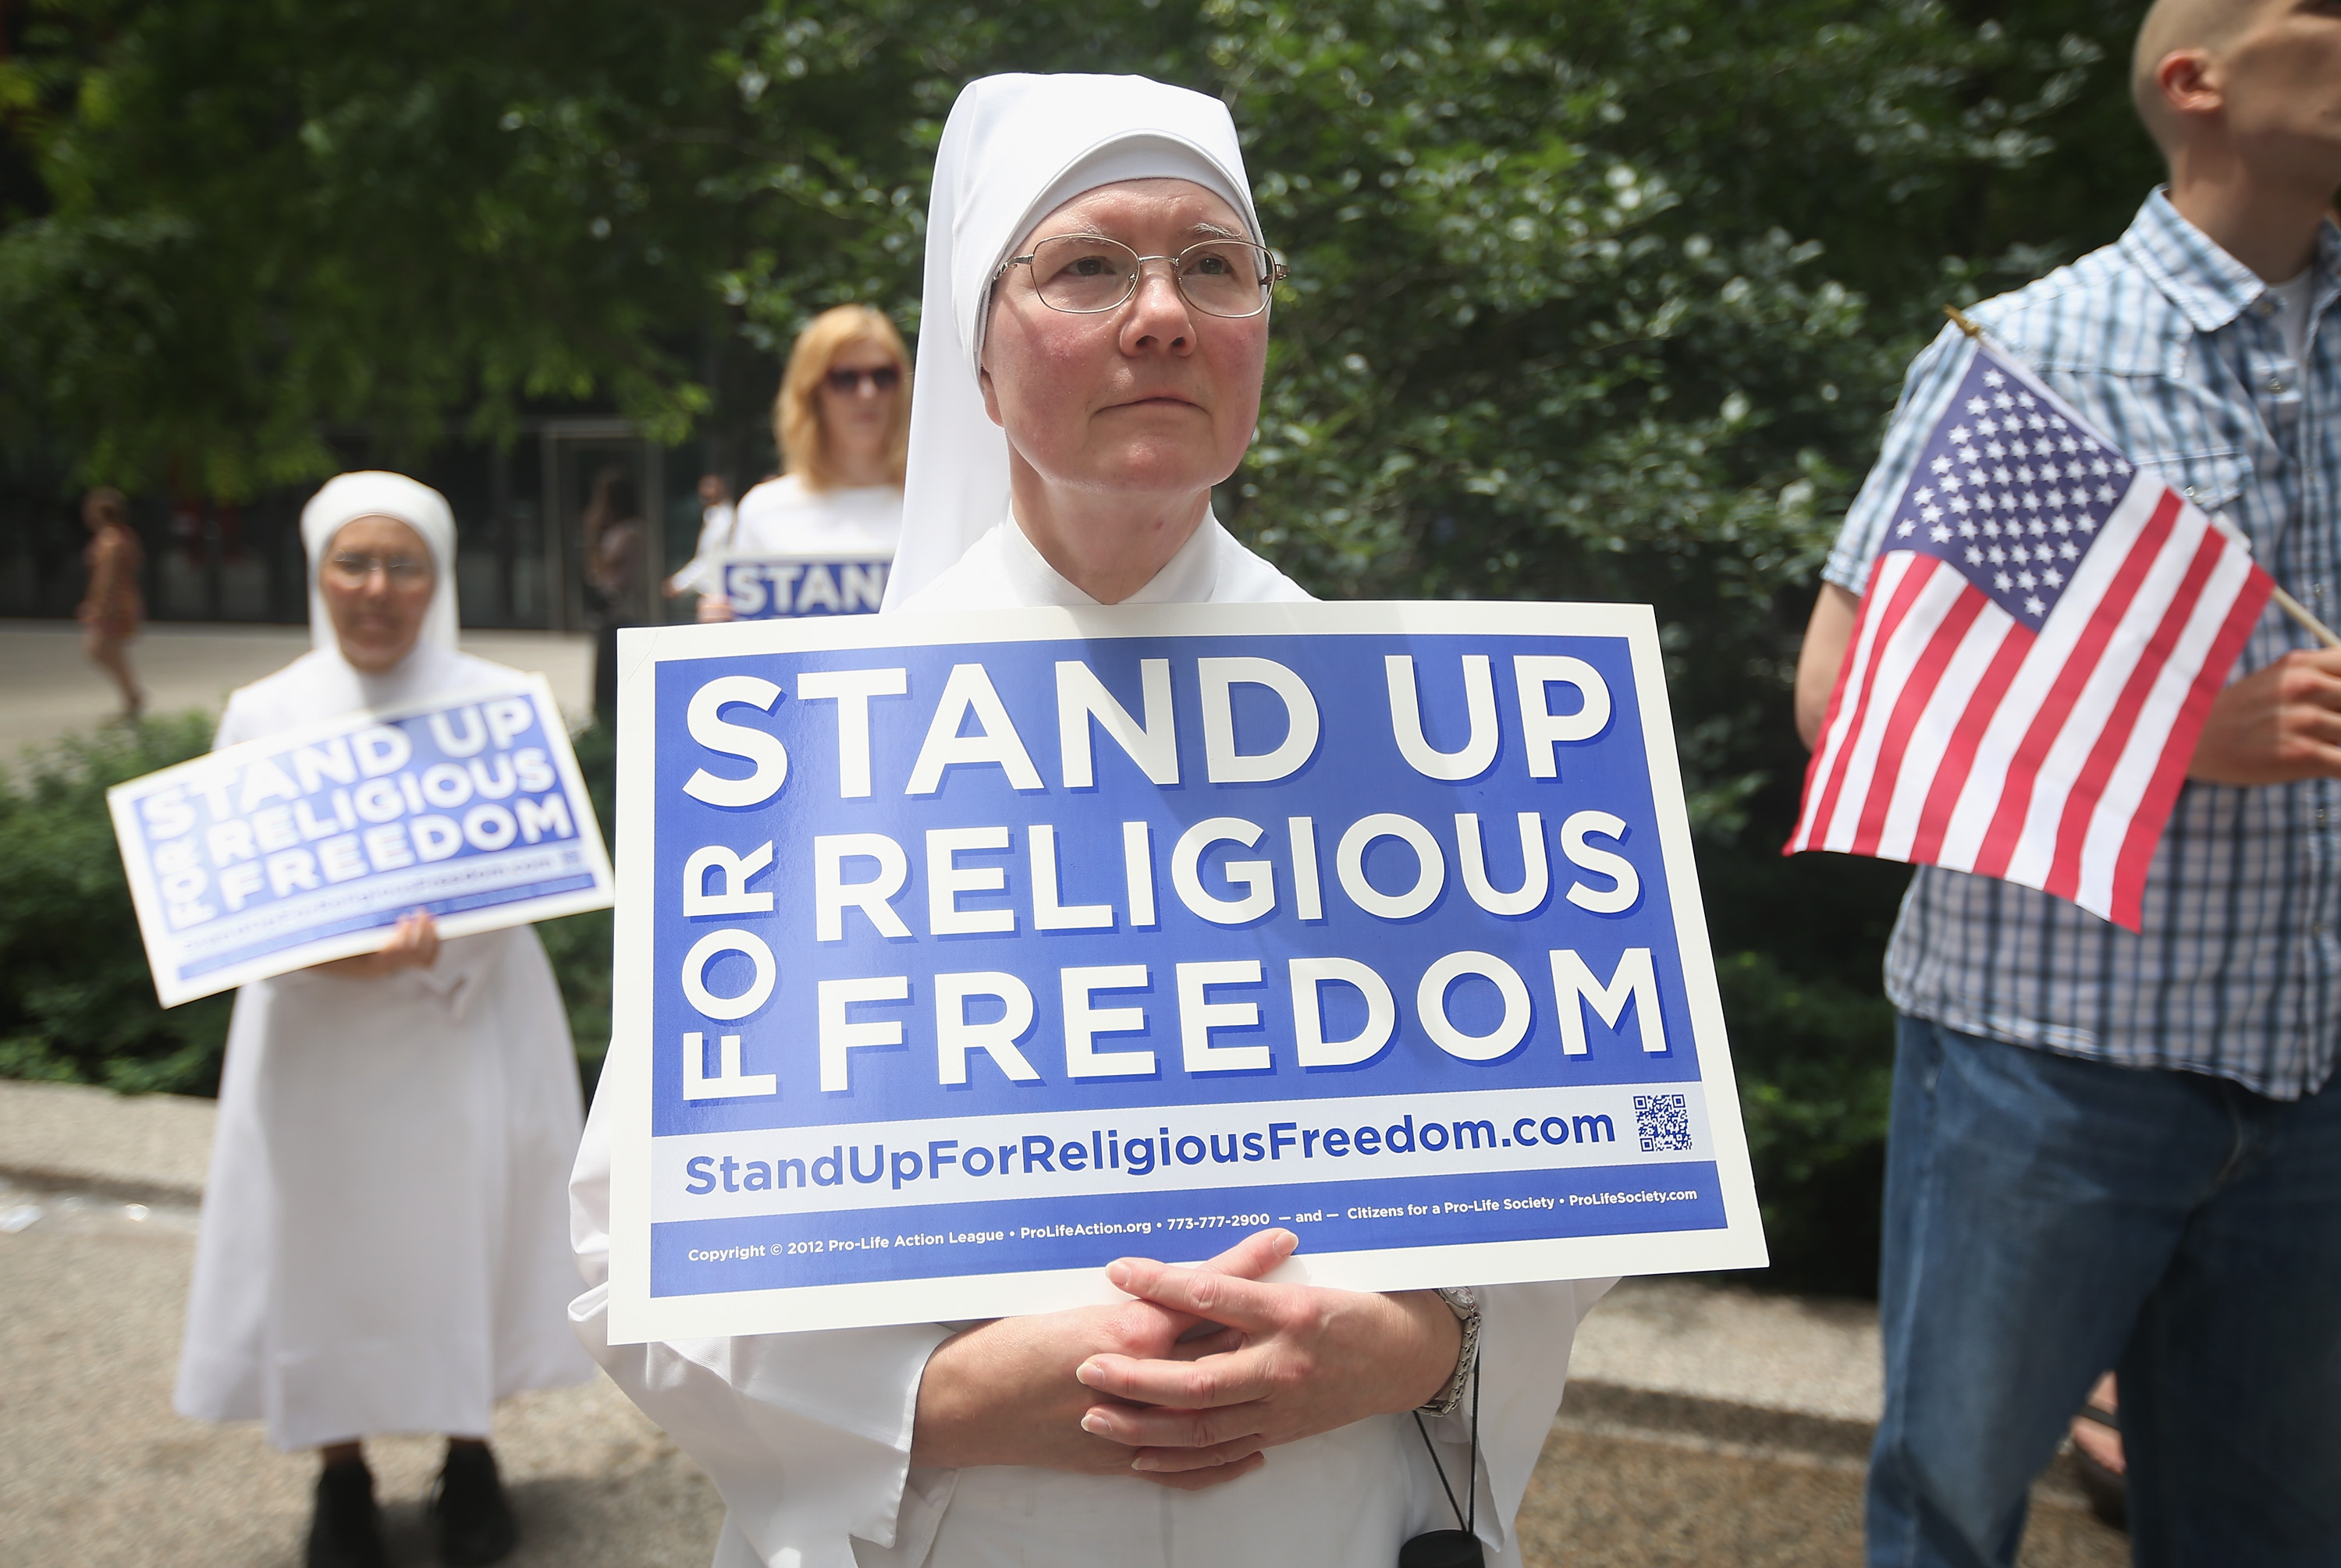 Sister Caroline attends a rally with other supporters of religious freedom to praise the Supreme Court's decision in the Hobby Lobby, contraception coverage requirement case on June 30, 2014 in Chicago, Illinois.